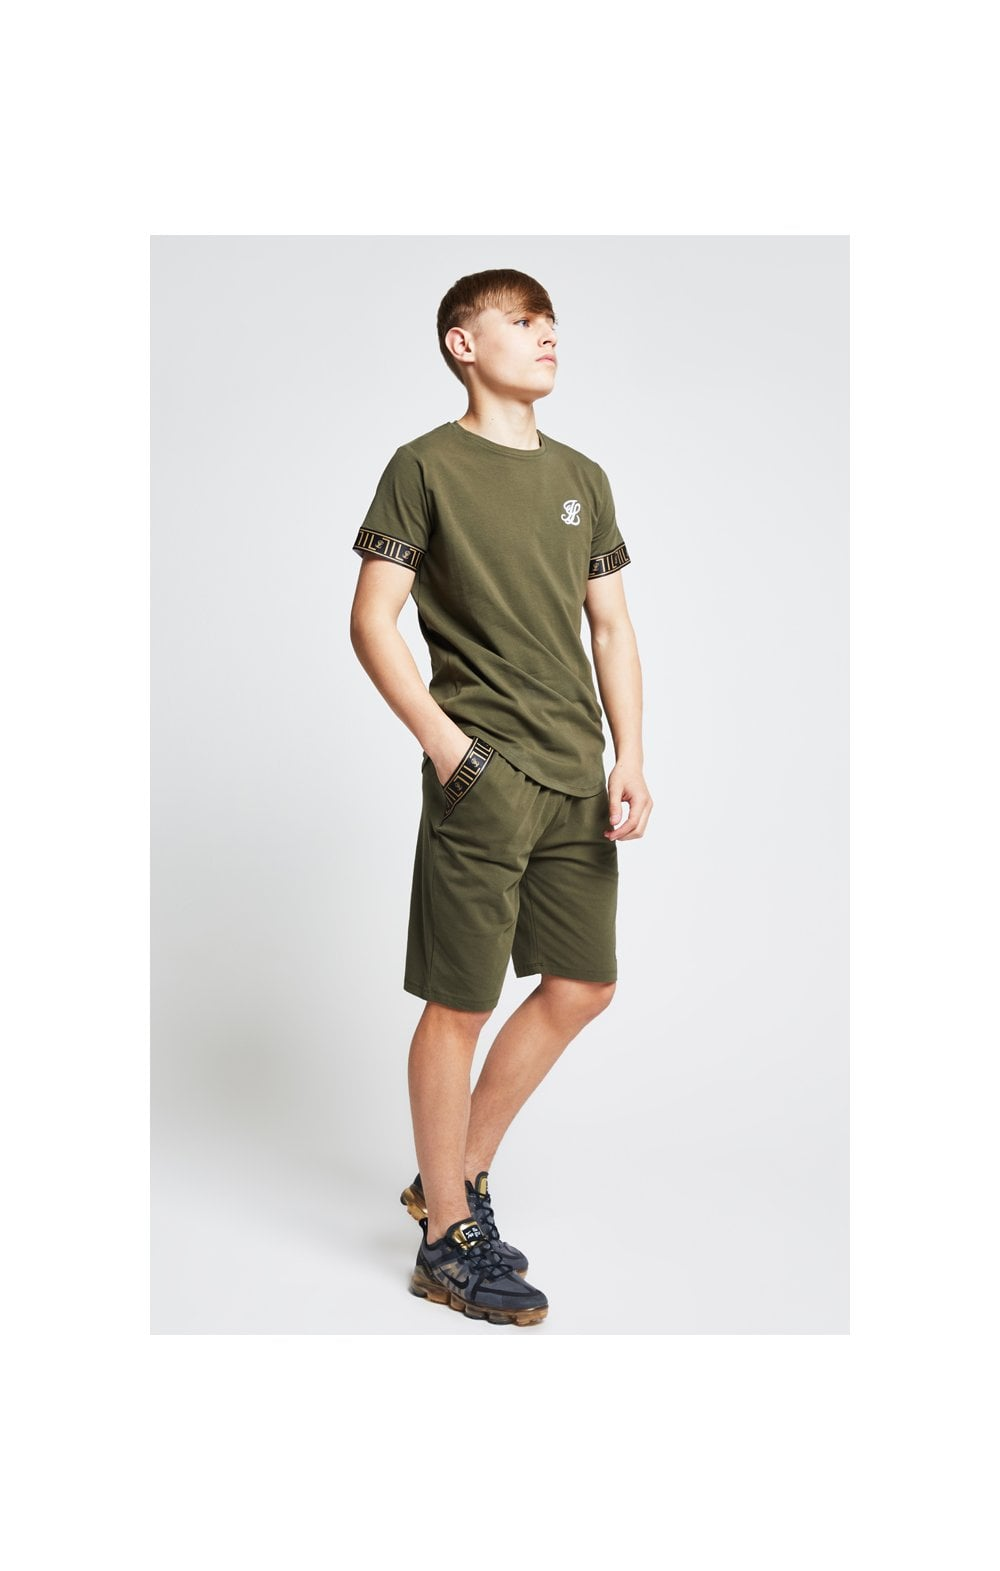 Illusive London Tech Tee - Khaki (3)